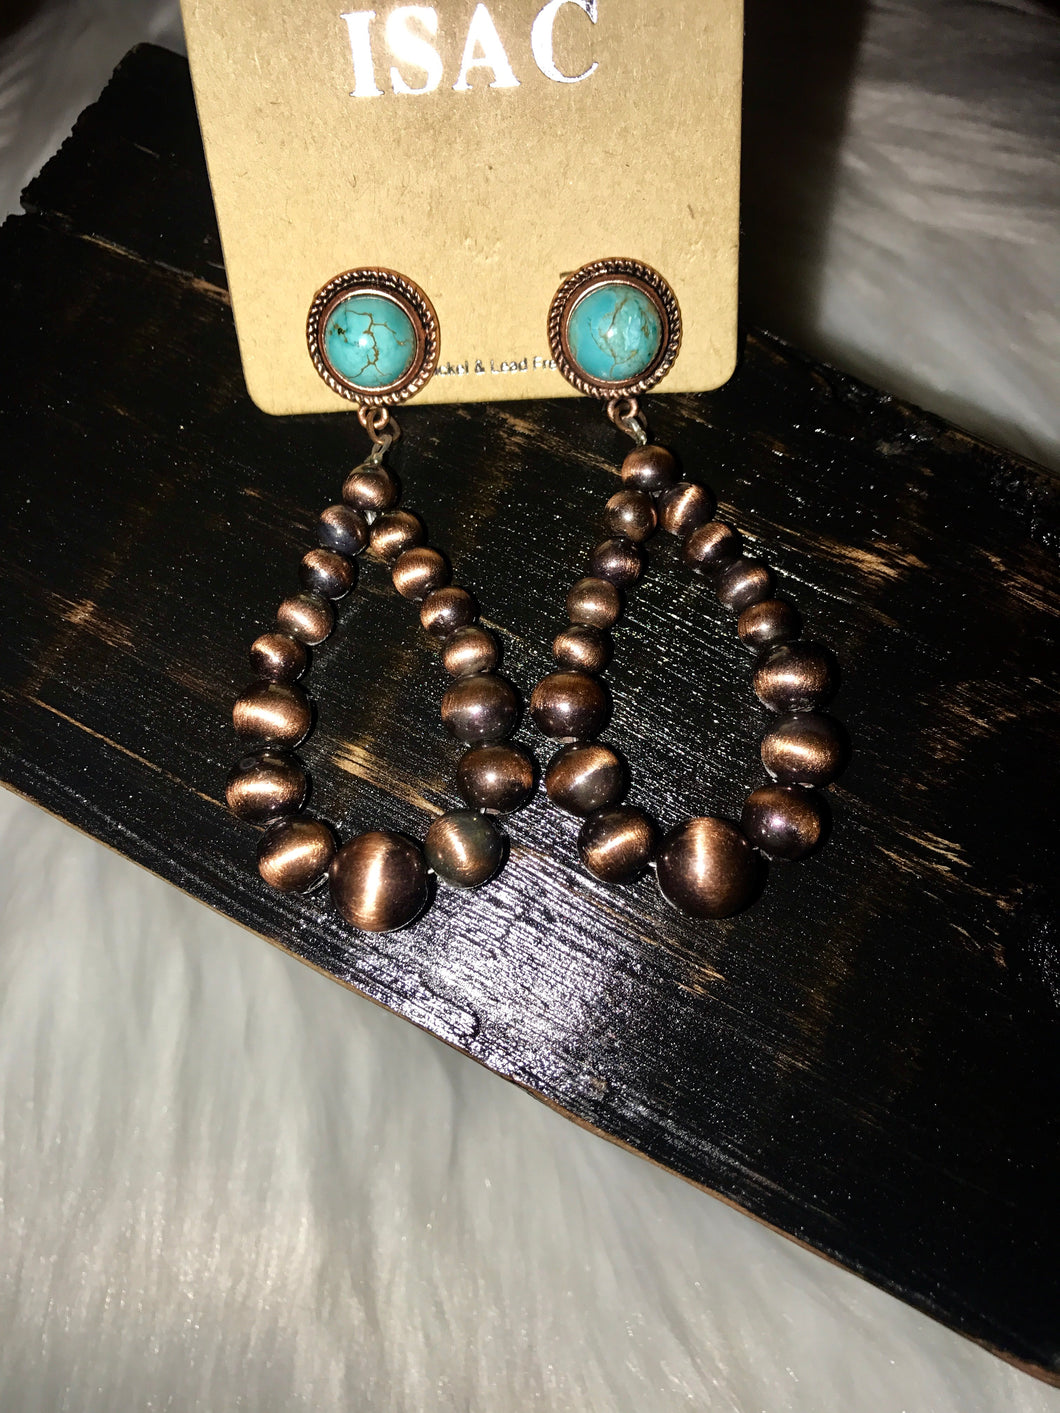 Faux Navajo Pearls and Turquoise Post Earrings - Bronze